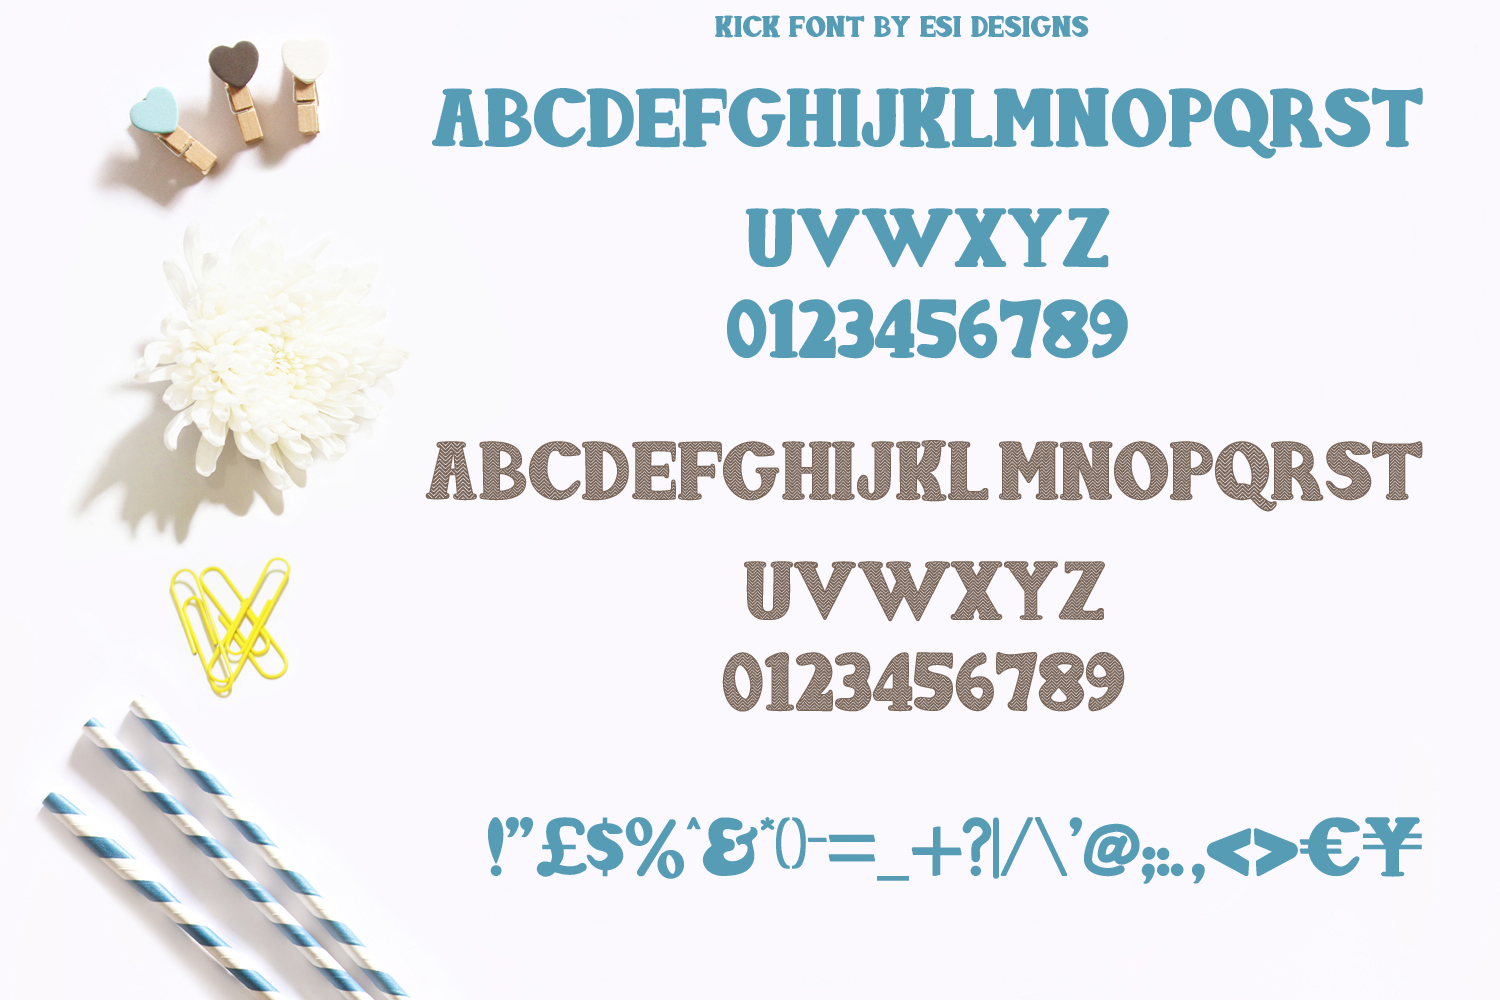 Kick Font - Solid and Chevron example image 2